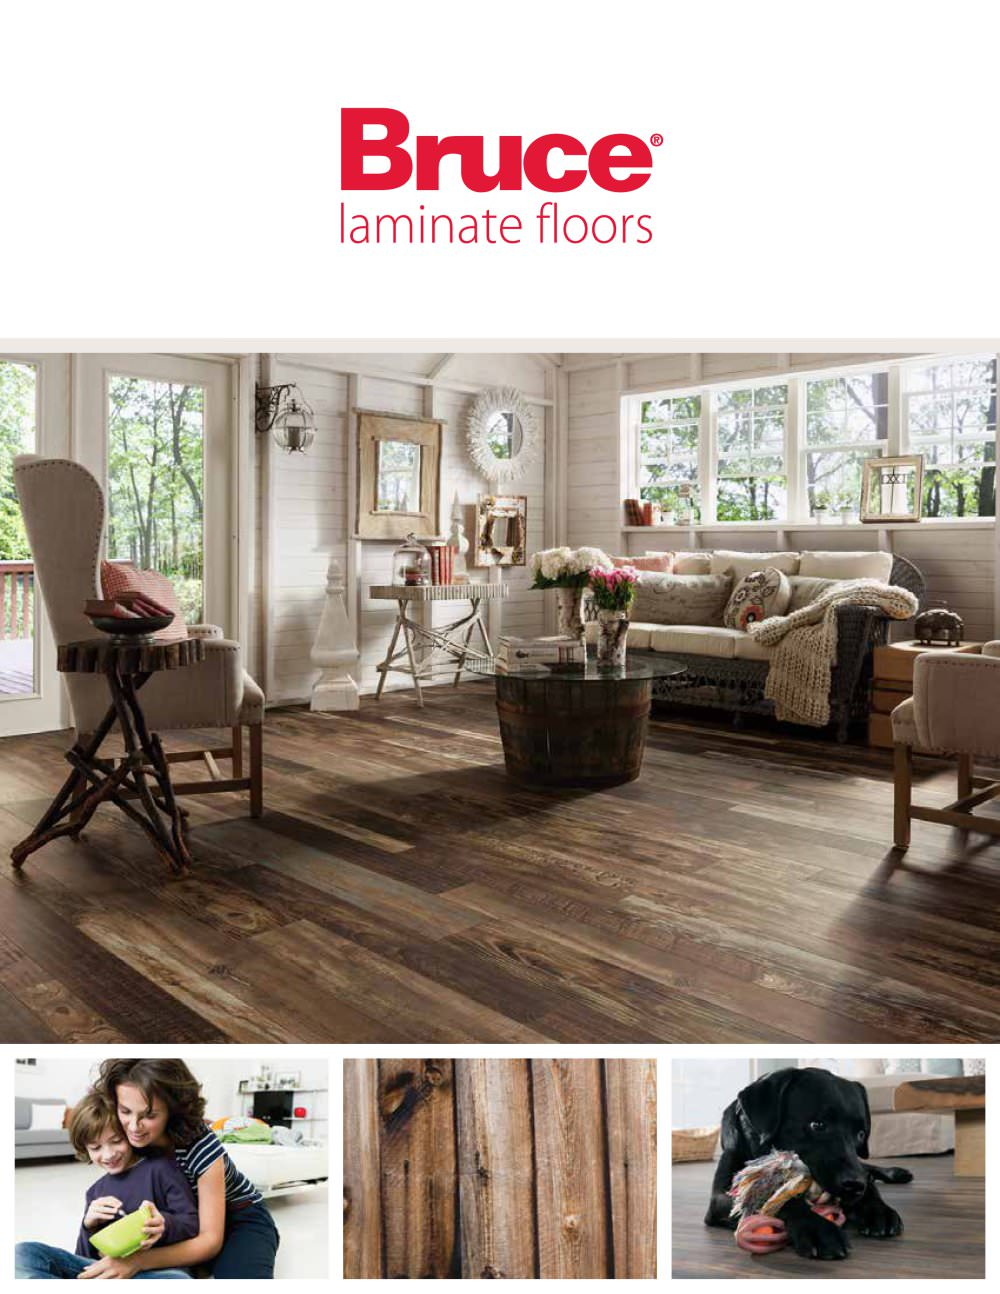 Bruce Laminate Floor Cleaner how to paint bruce laminate floor cleaner for modern bathroom vanity modern bathroom vanities great Bruce Laminate 50 Pages